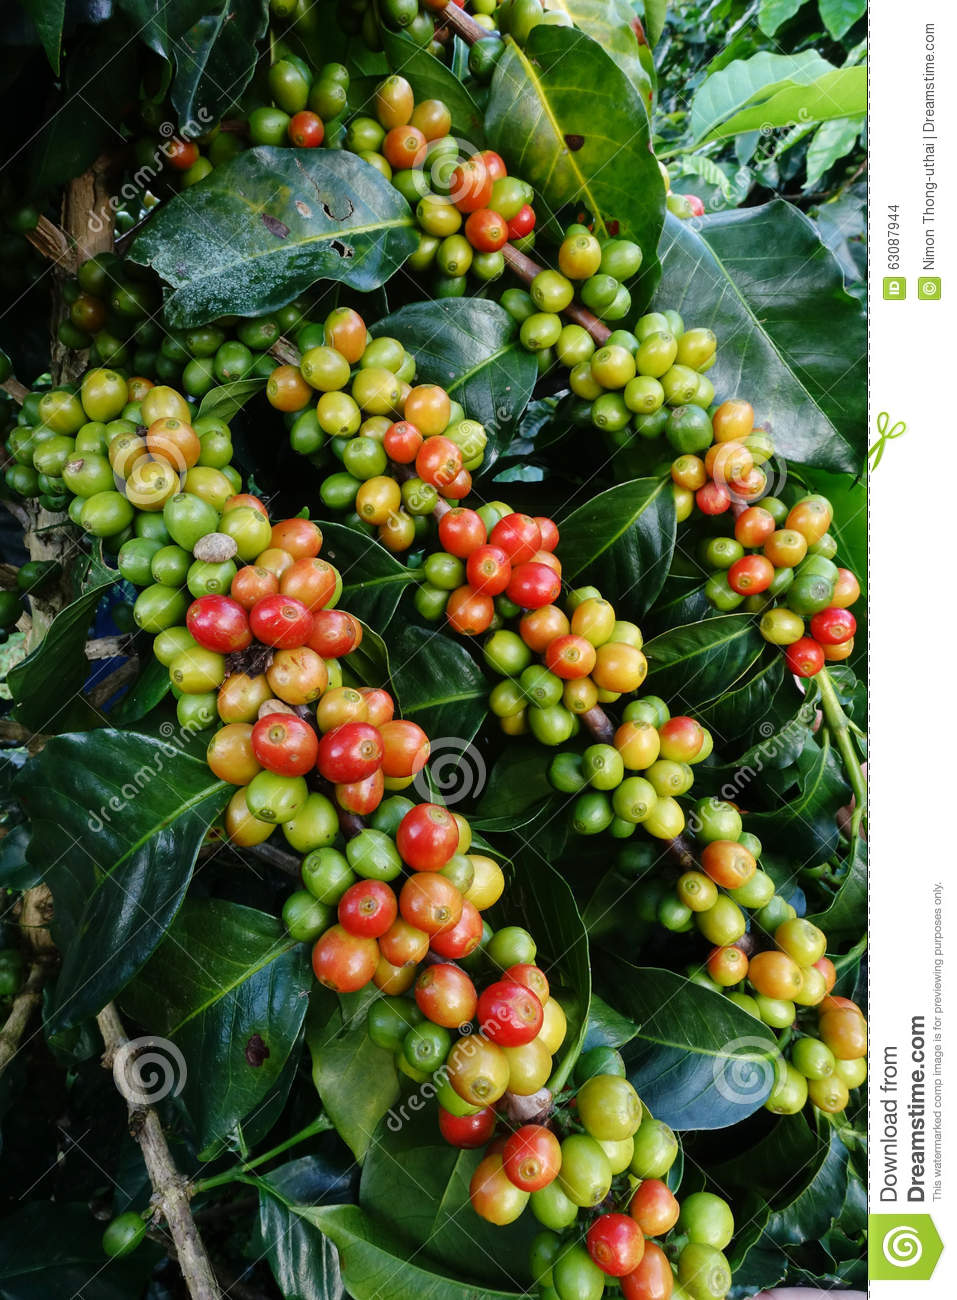 Download Grains De Café Mûrissant Sur Un Arbre Photo stock - Image du java, branchement: 63087944